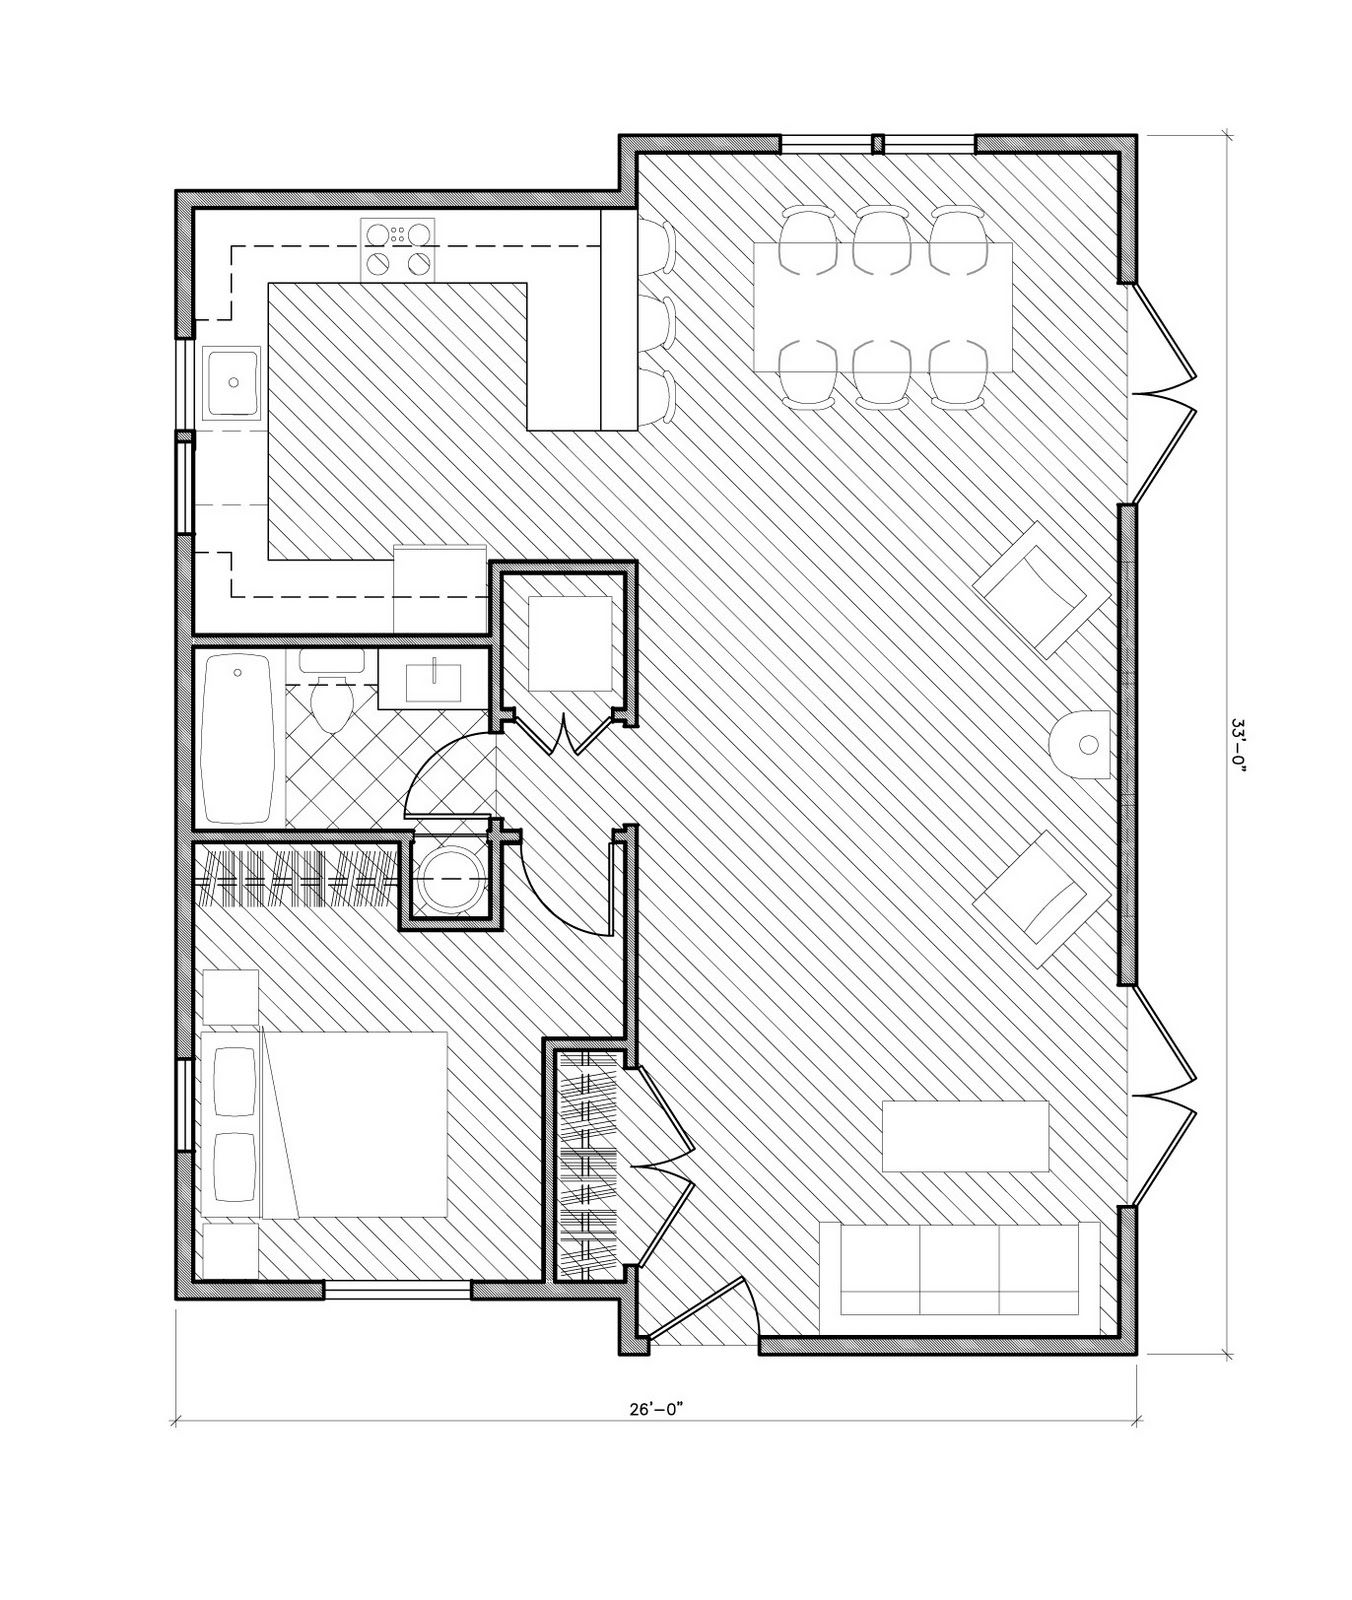 Mother In Law Cottage Plans Find House Plans Mother In Law Cottage Tiny House Floor Plans In Law House